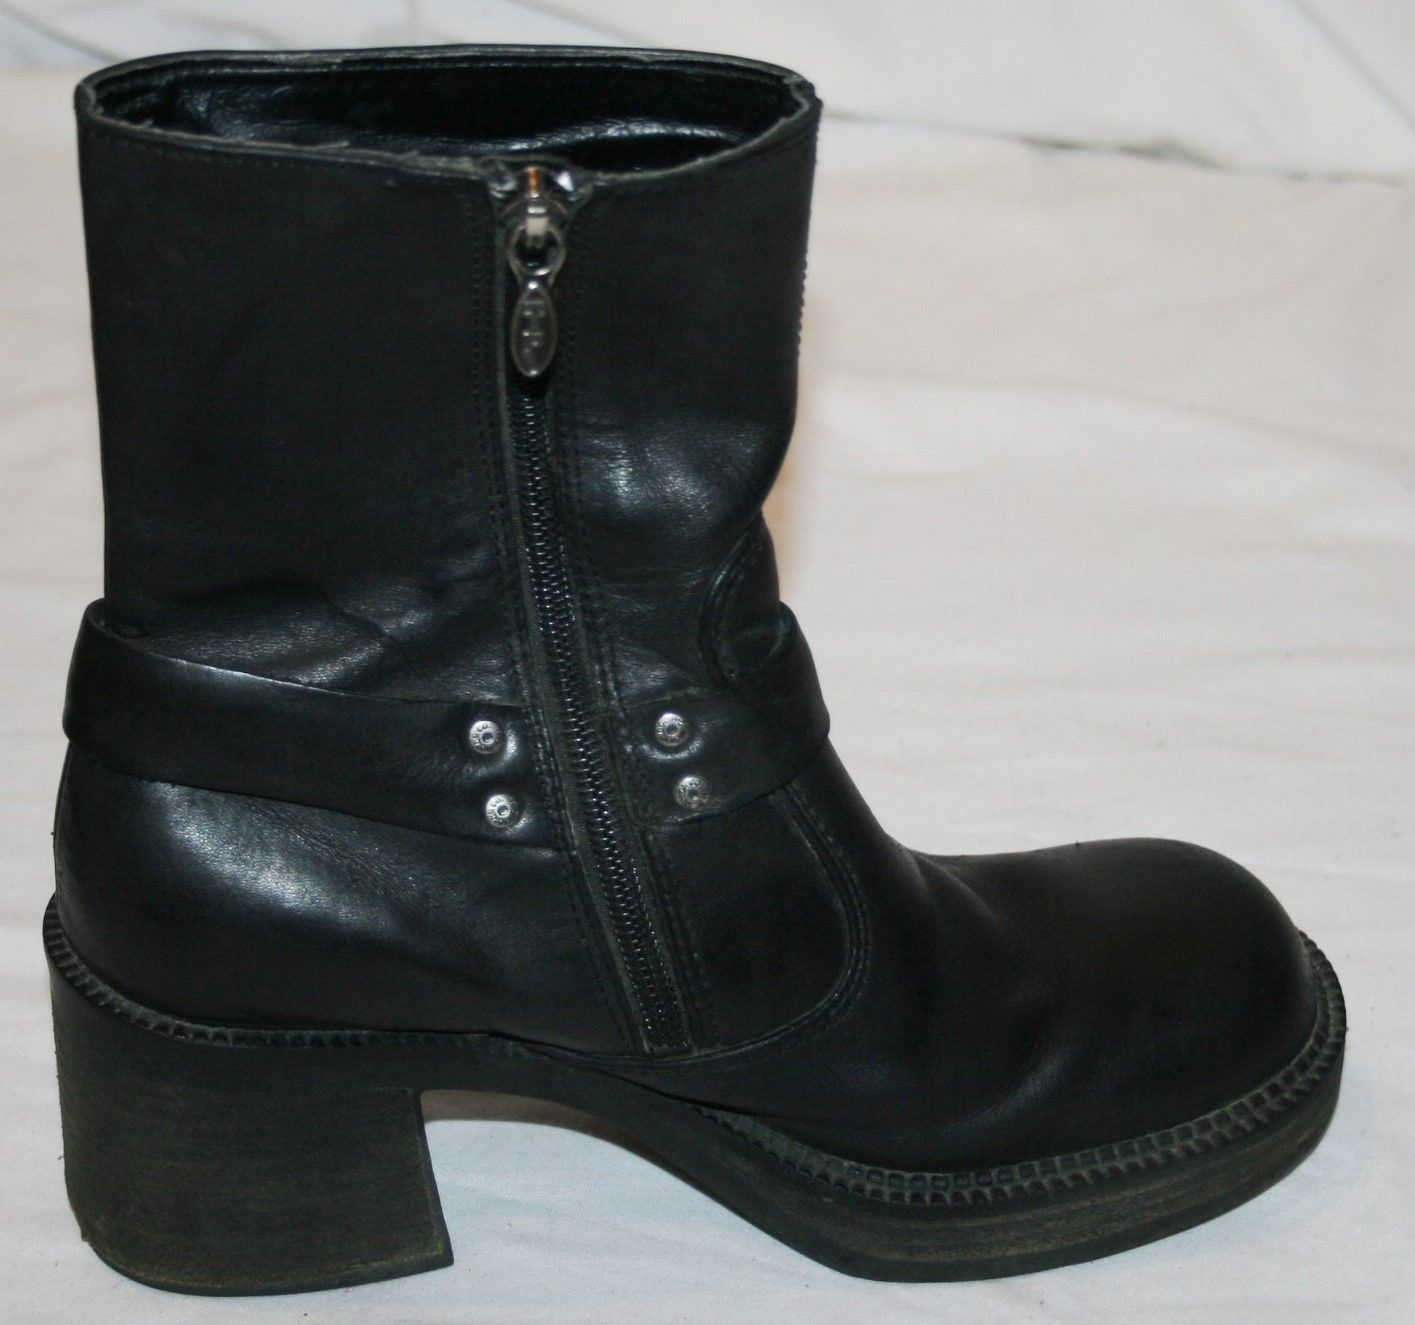 51cc320affea Harley Davidson Black Leather Ankle Boots and 32 similar items. 57